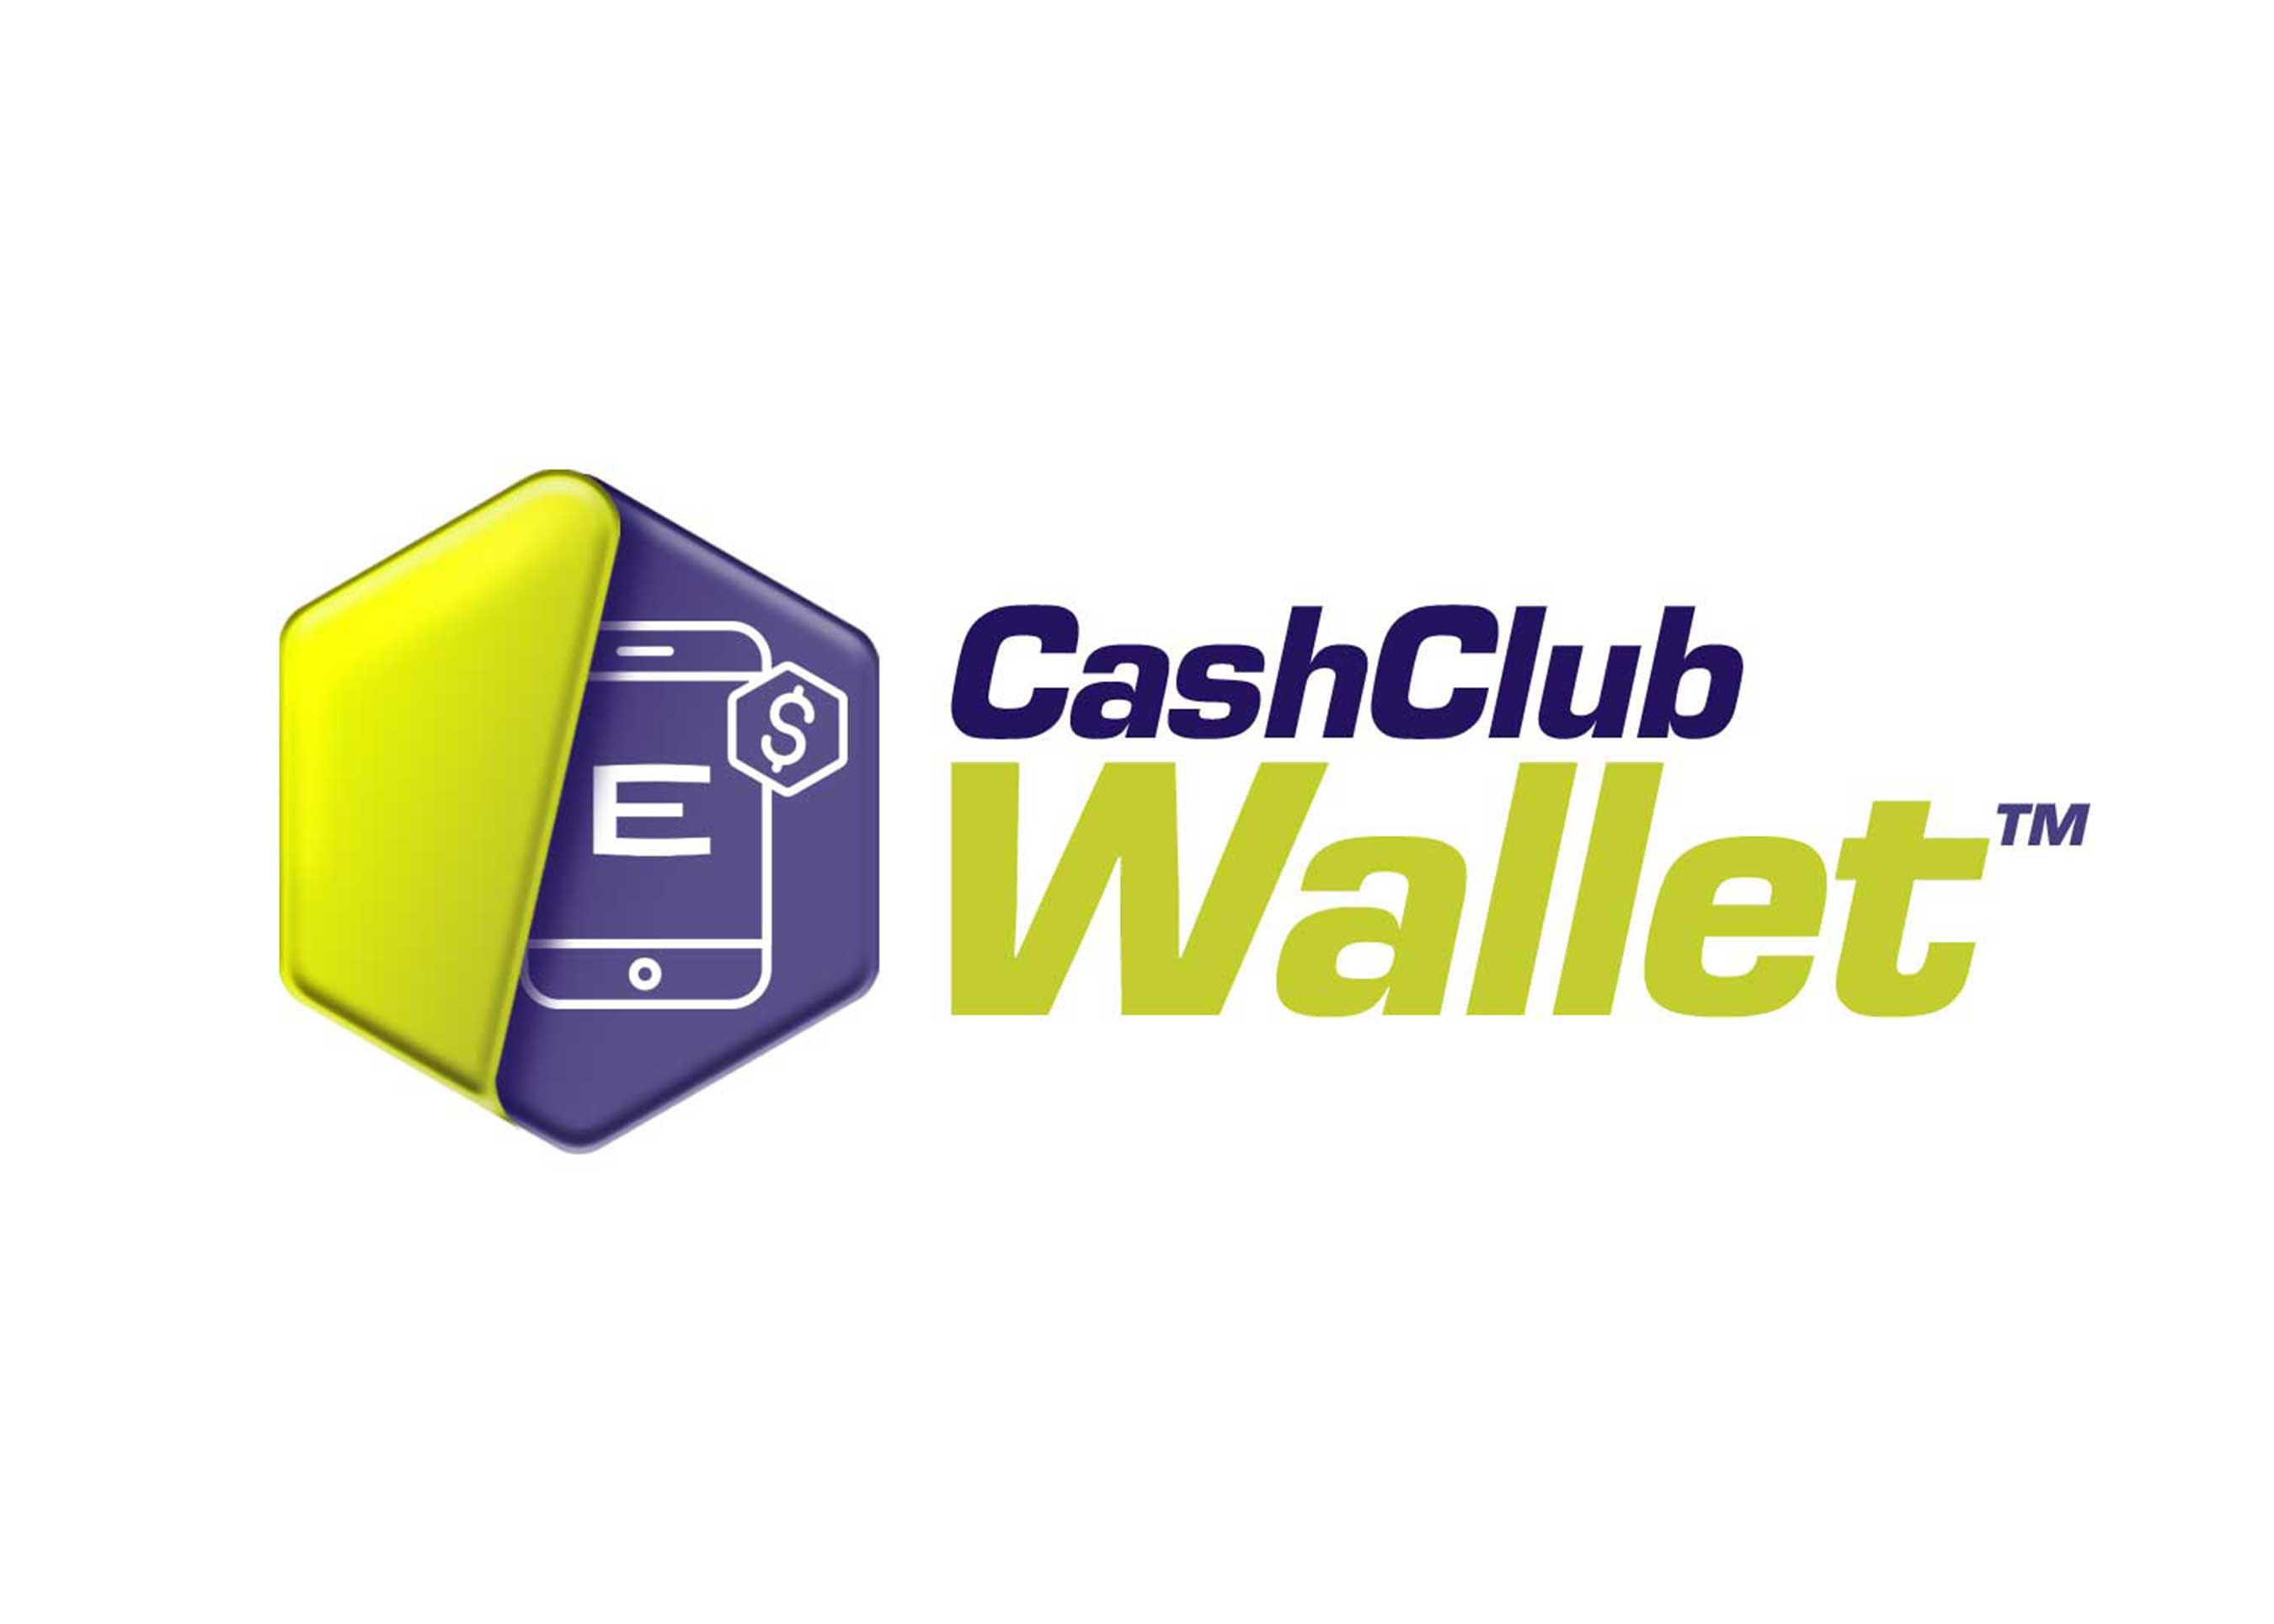 Everi's CashClub Wallet® integrates and extends cashless payments throughout the gaming enterprise using traditional, alternative, and mobile technologies